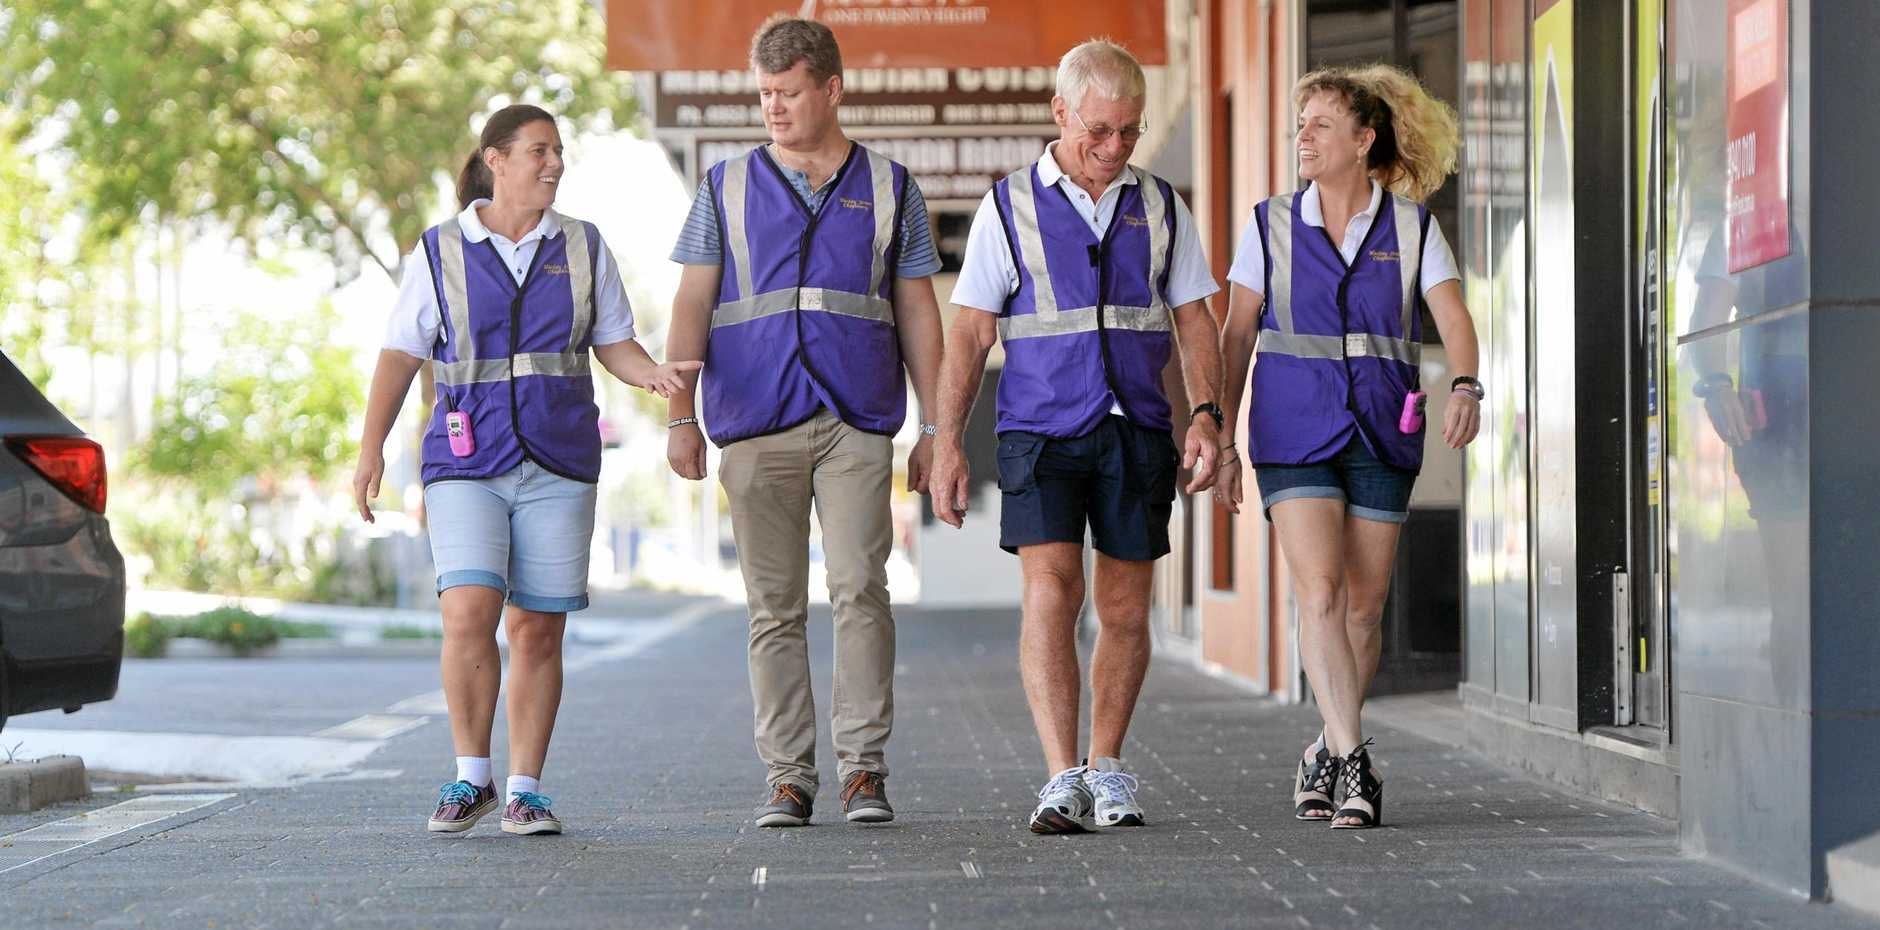 Mackay Street Chaplaincy provides water, first aid, practical assistance and a friendly ear to Mackay revellers partying in the city centre on weekends.